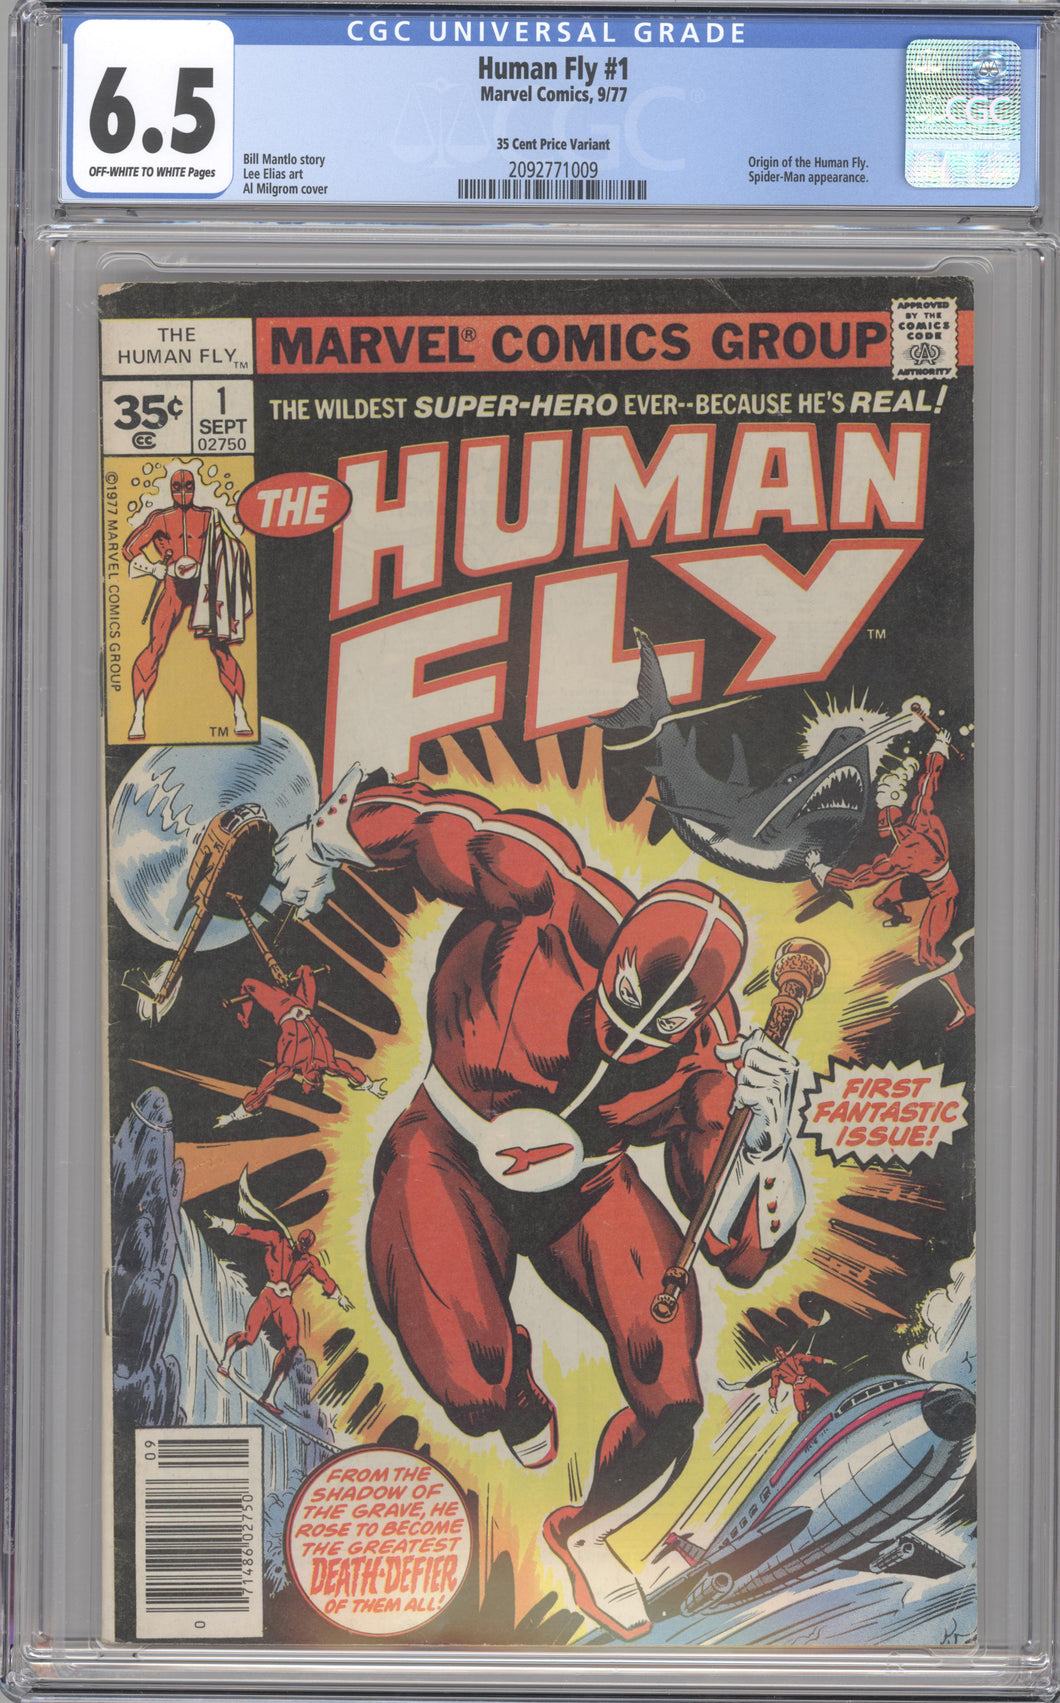 HUMAN FLY # 1 CGC 6.5 F+ RARE 35 CENT MARVEL COVER PRICE VARIANT 1977